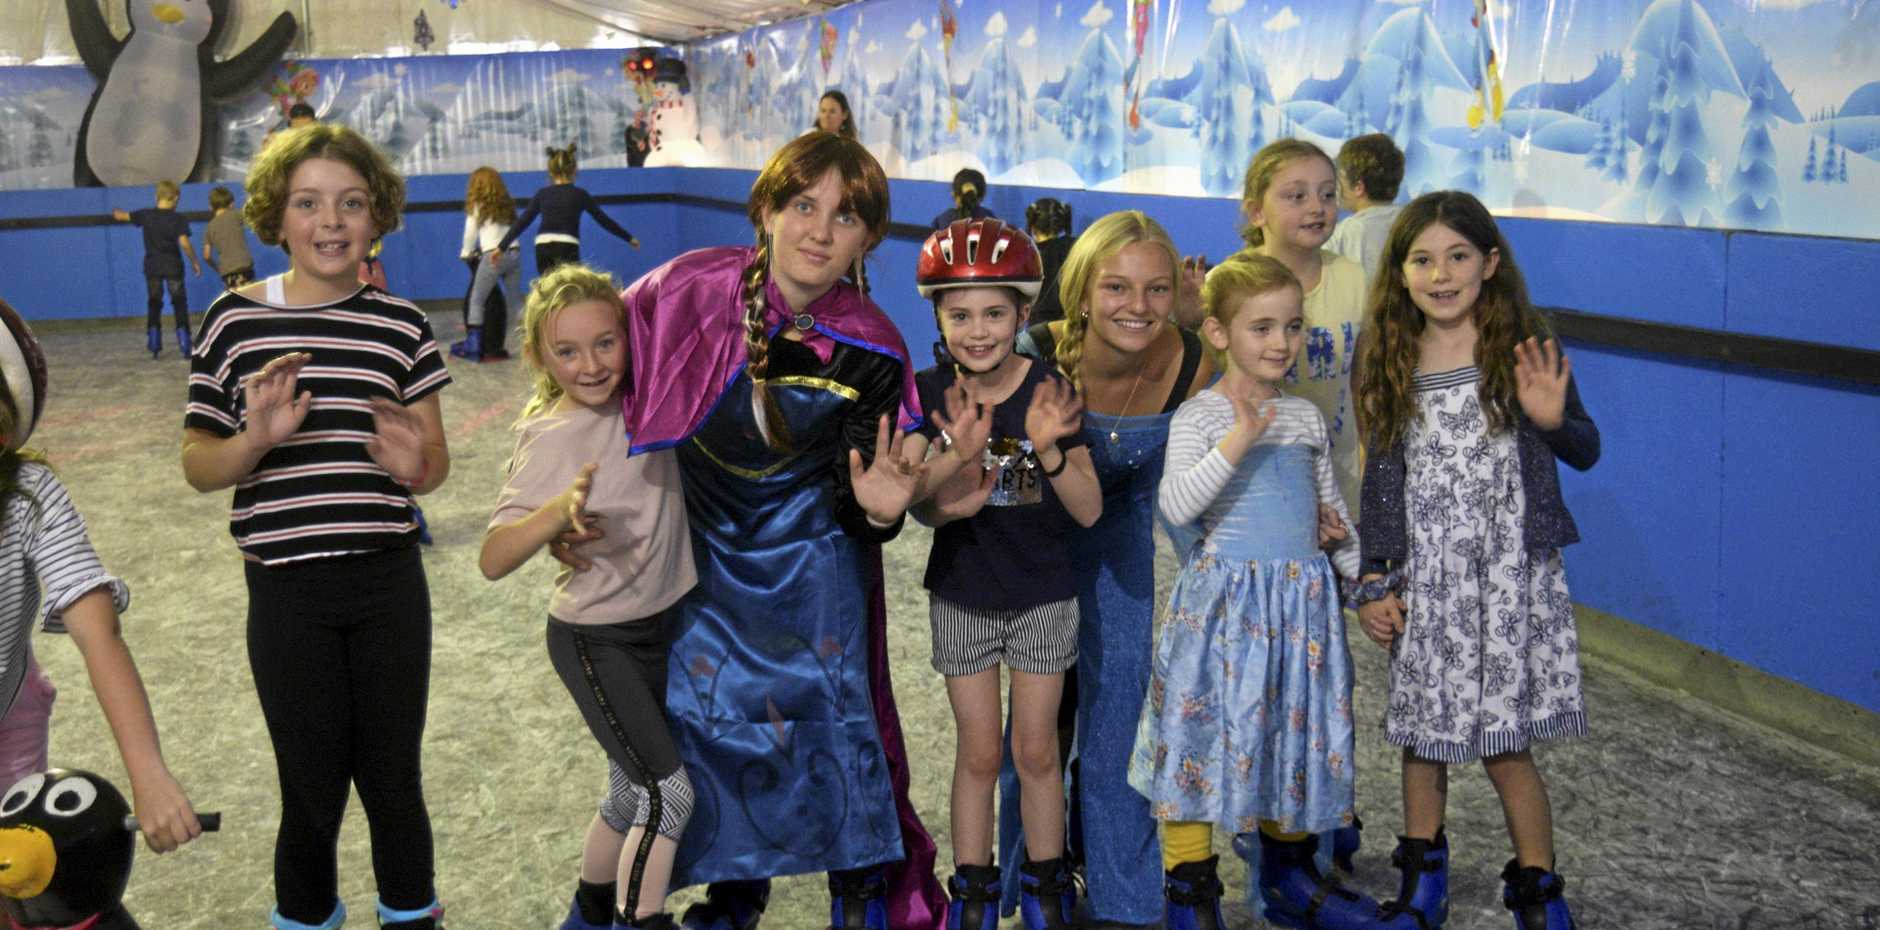 Elsa (Chelsea Bridges from Yamba Bowlo) and Anna (Molly McLeod from Yamba Bowlo) join the youngsters at the grand opening of the ice skating rink at the Bowlo Sports & Leisure centre on Saturday morning.